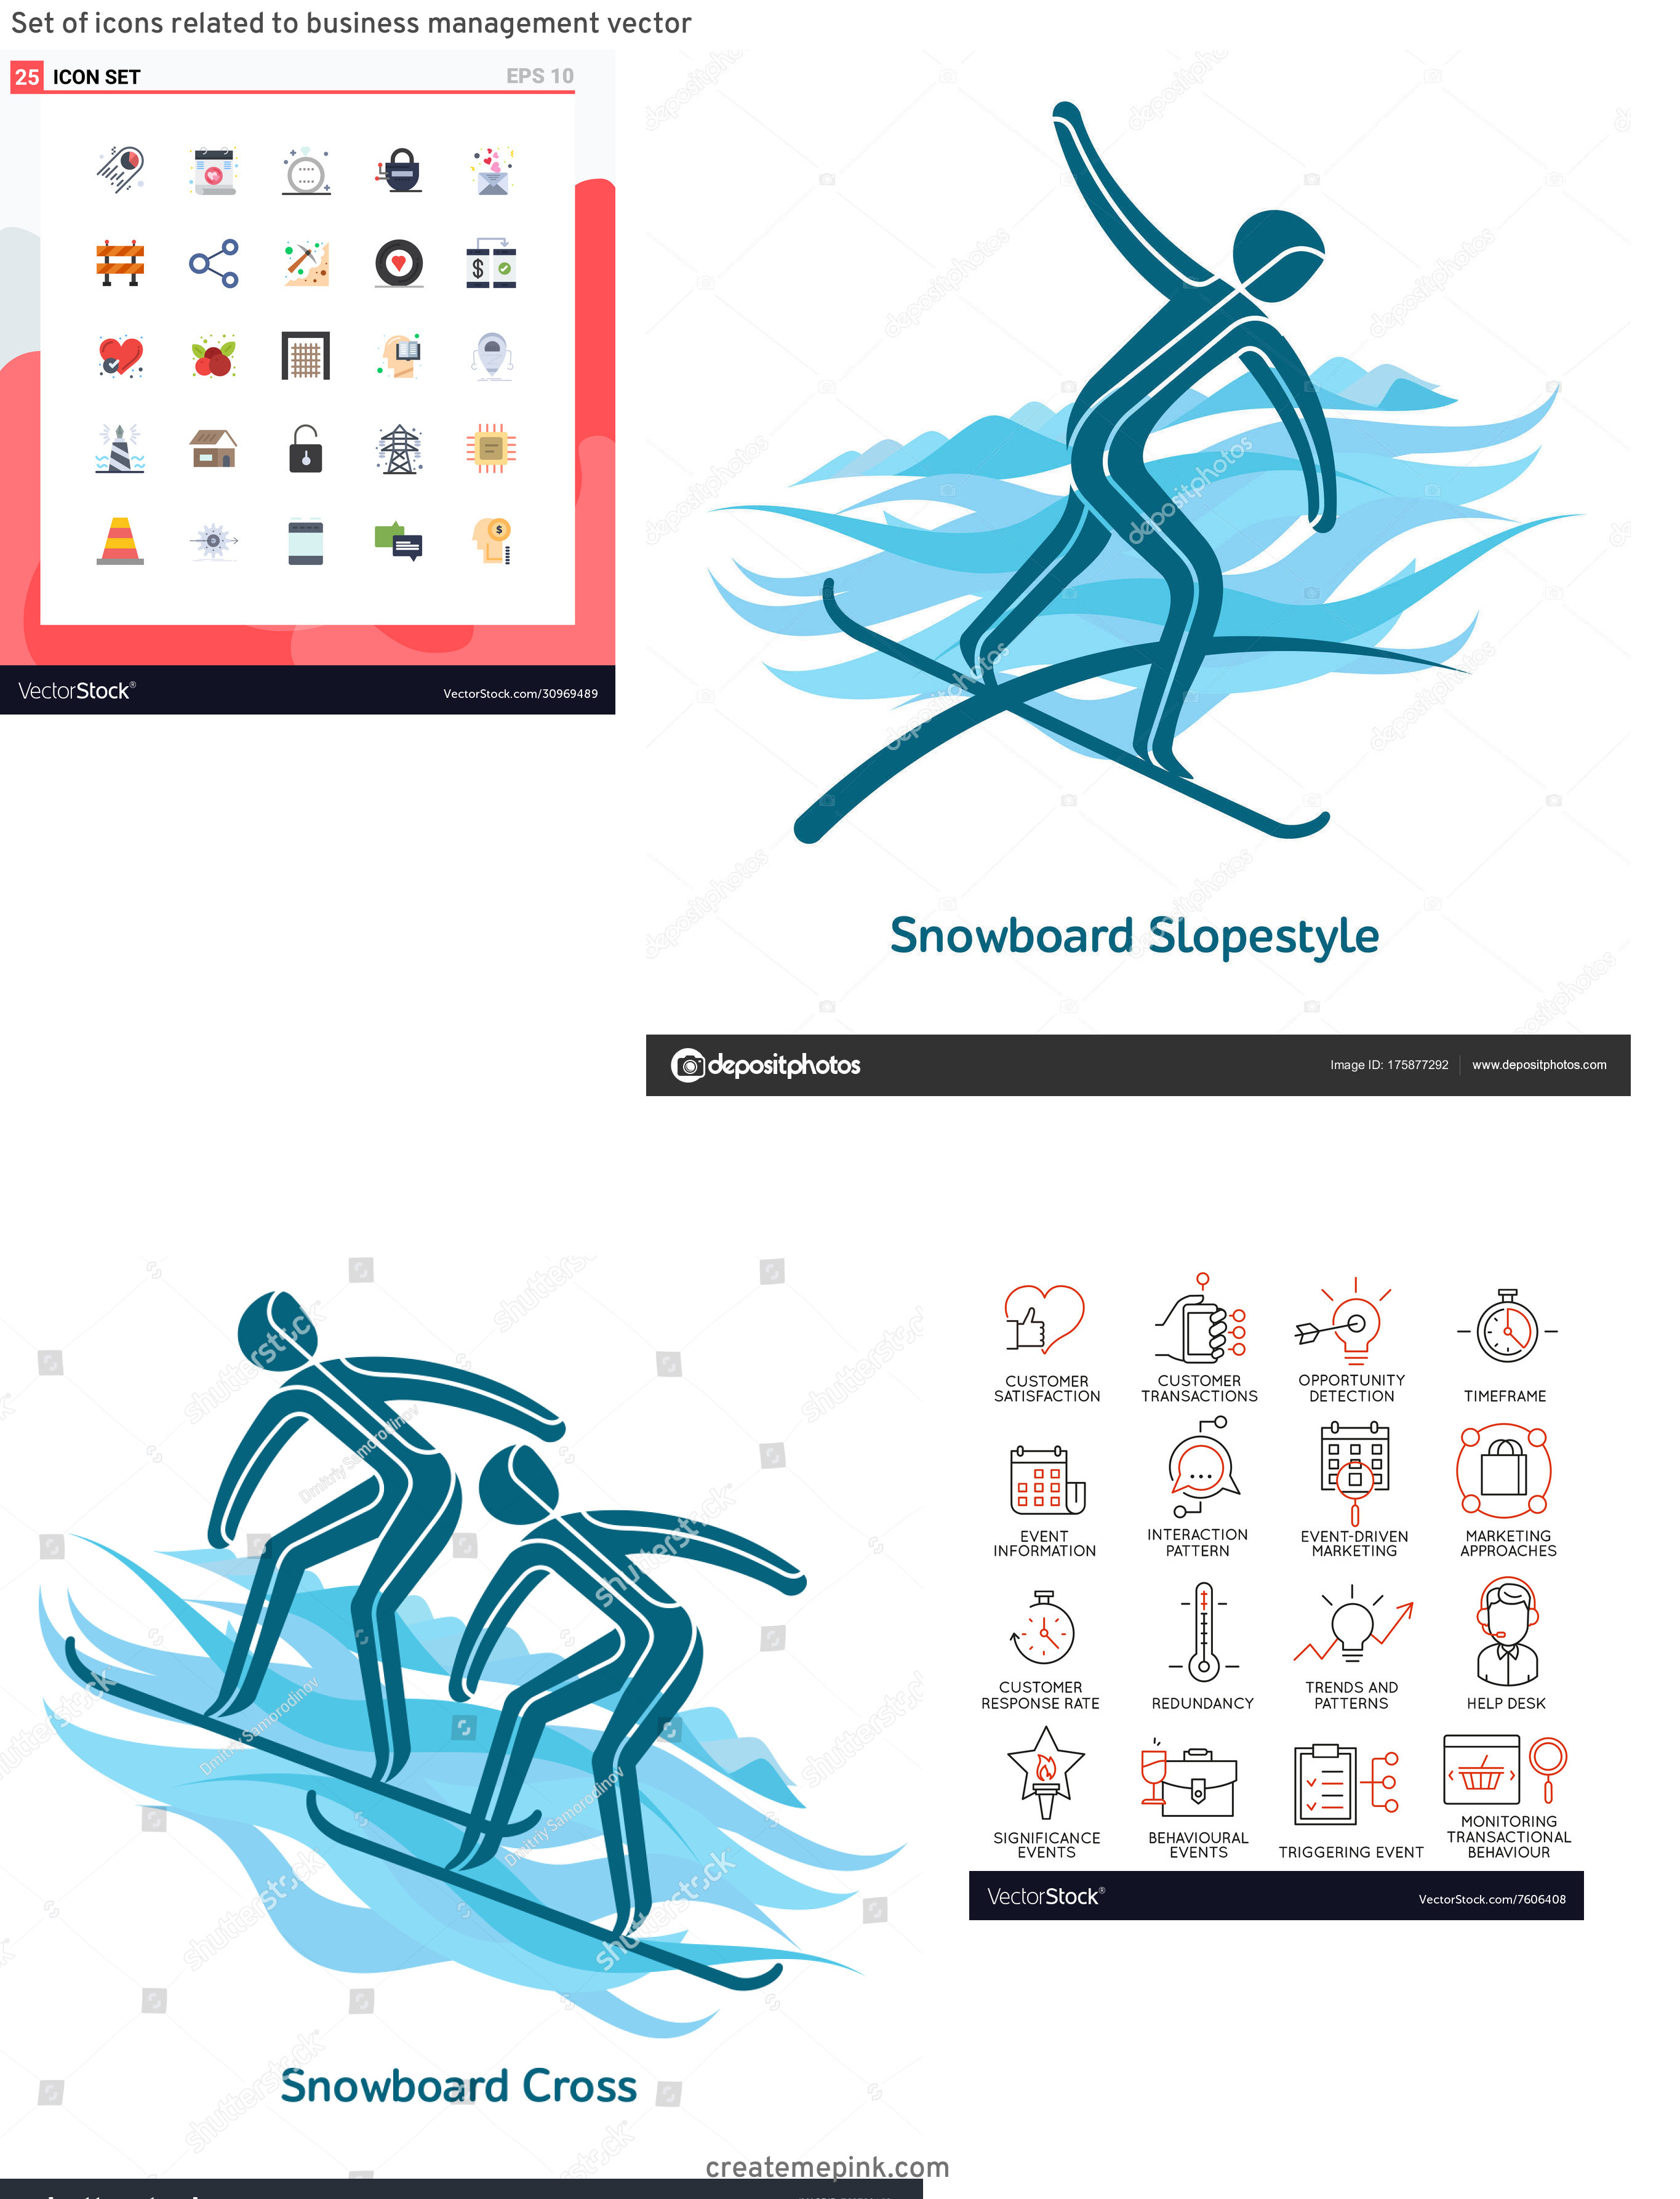 Vector Pictograms Events: Set Of Icons Related To Business Management Vector